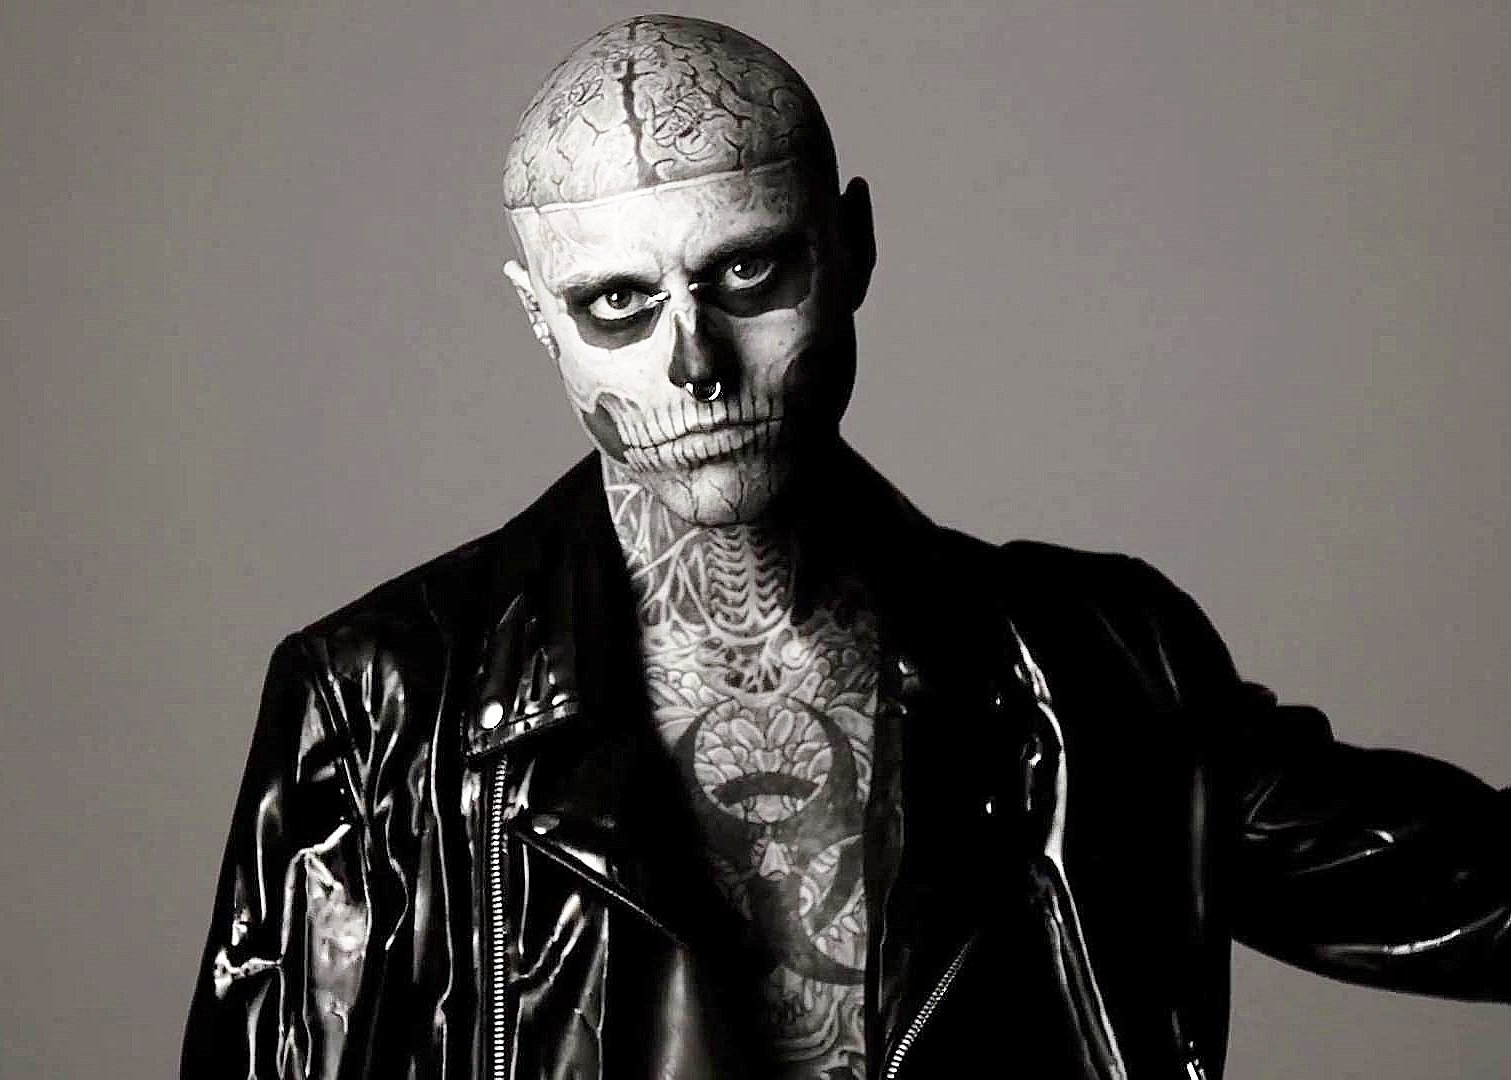 rick genest suitrick genest инстаграм, rick genest png, rick genest gif, rick genest wallpaper, rick genest dermablend, rick genest 2017, rick genest 47 ronin, rick genest video, rick genest cover up, rick genest tumblr gif, rick genest interview, rick genest lady gaga, rick genest smoking, rick genest suit, rick genest gay or straight, rick genest commercial, rick genest imdb, rick genest instagram, rick genest женился, rick genest без тату